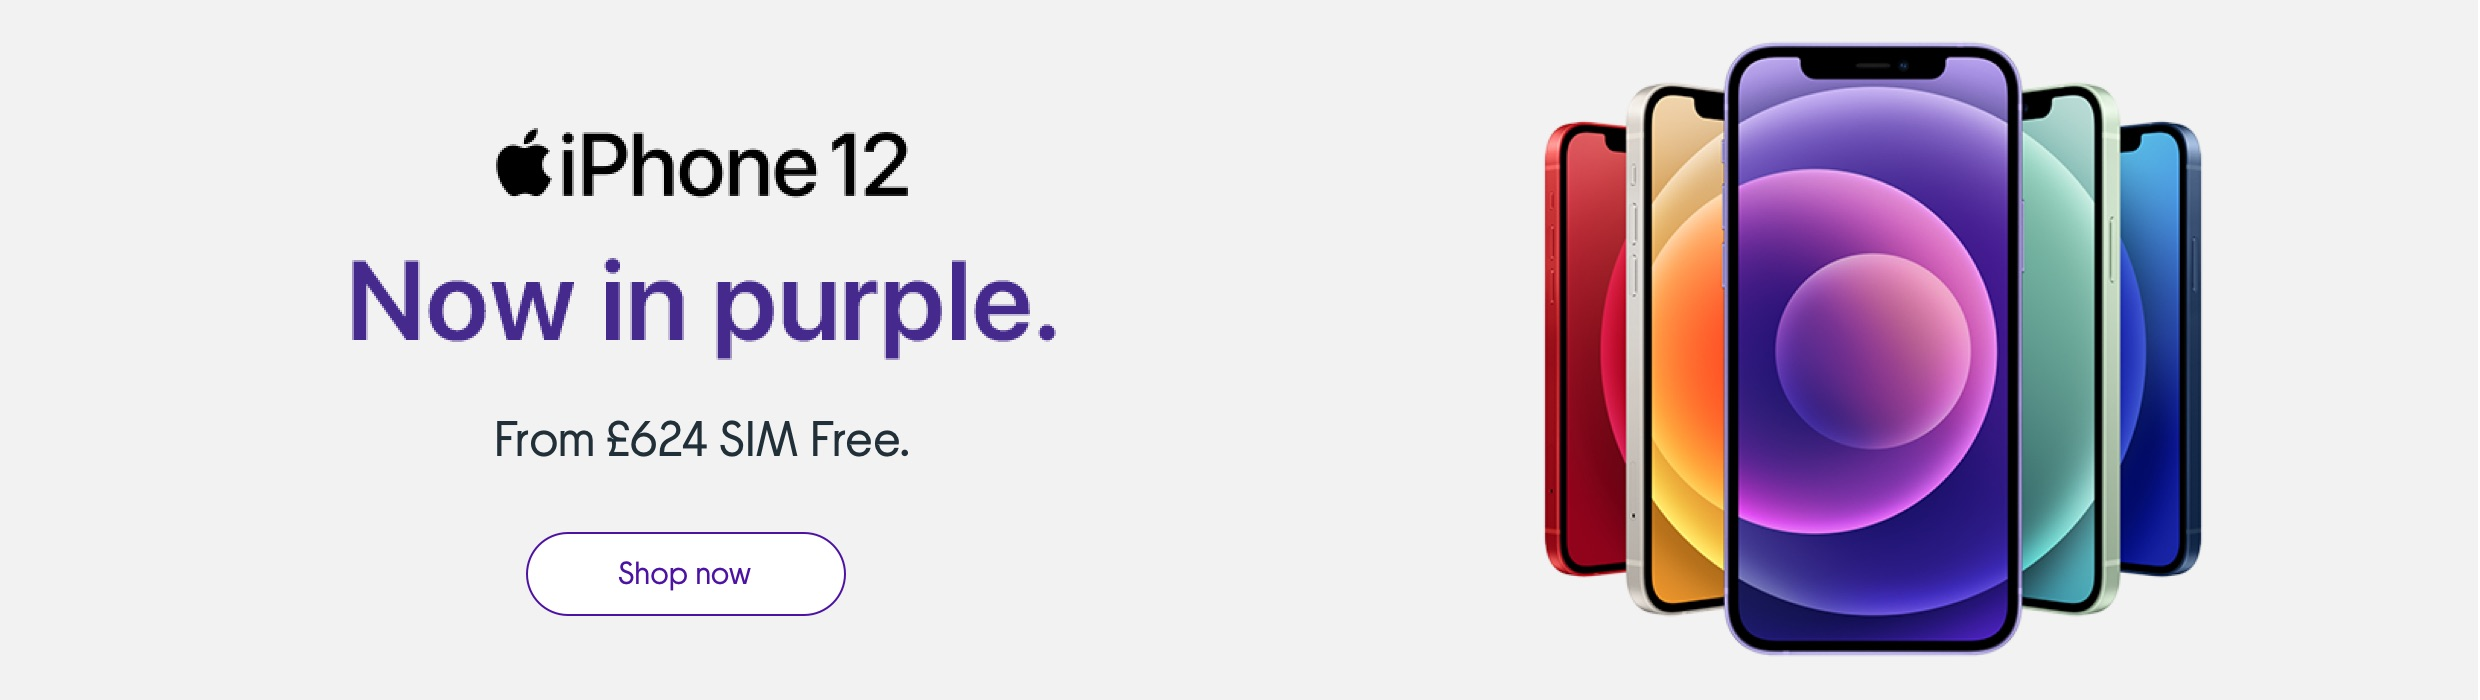 iPhone 12 now in purple.